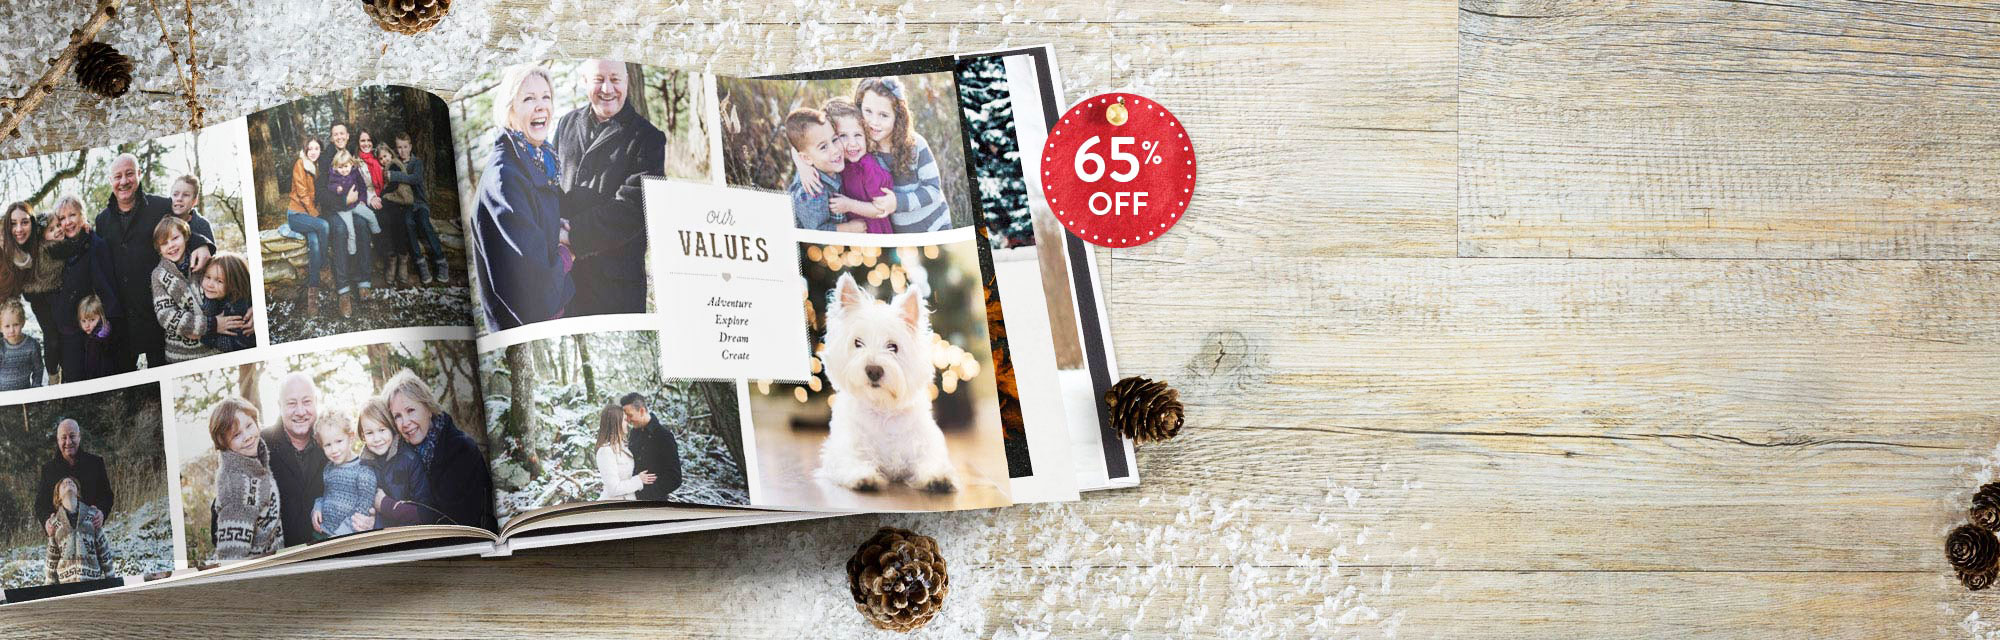 "Photo book bonanza : Get an incredible 65% off our 11x8"" hardcover book with 100 pages. Use code: BEST316. Offer ends 20/12/2016."